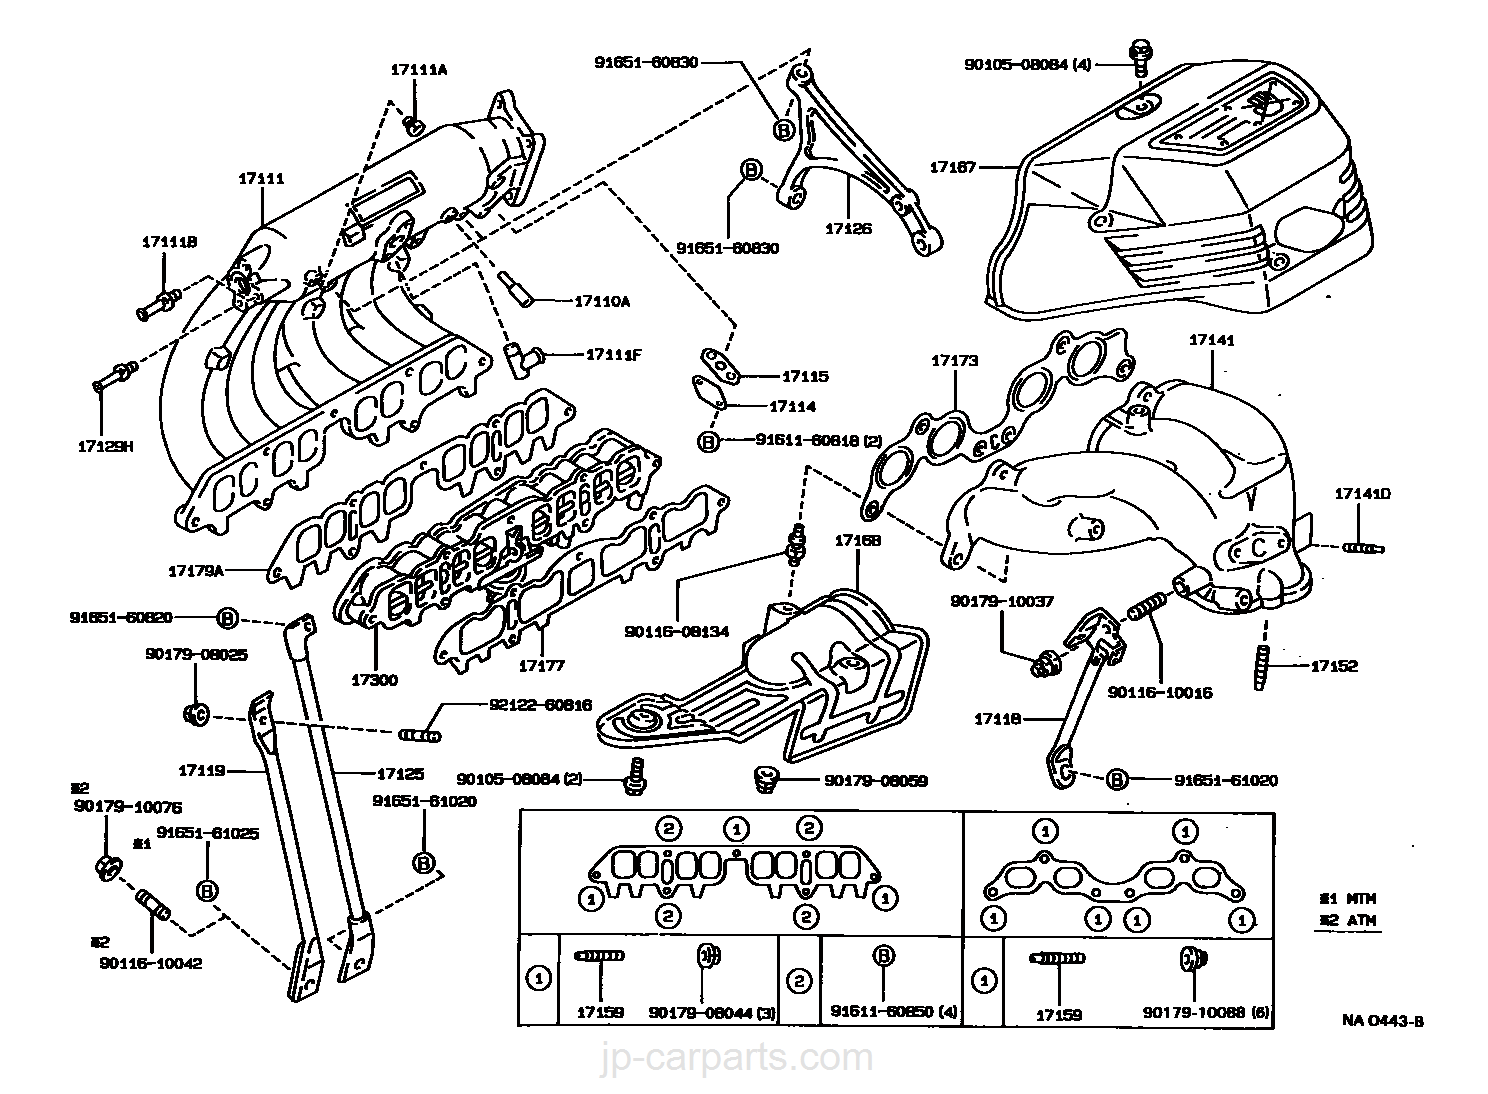 Manifold Toyota Part List R2 Engine Diagram Select Image Size